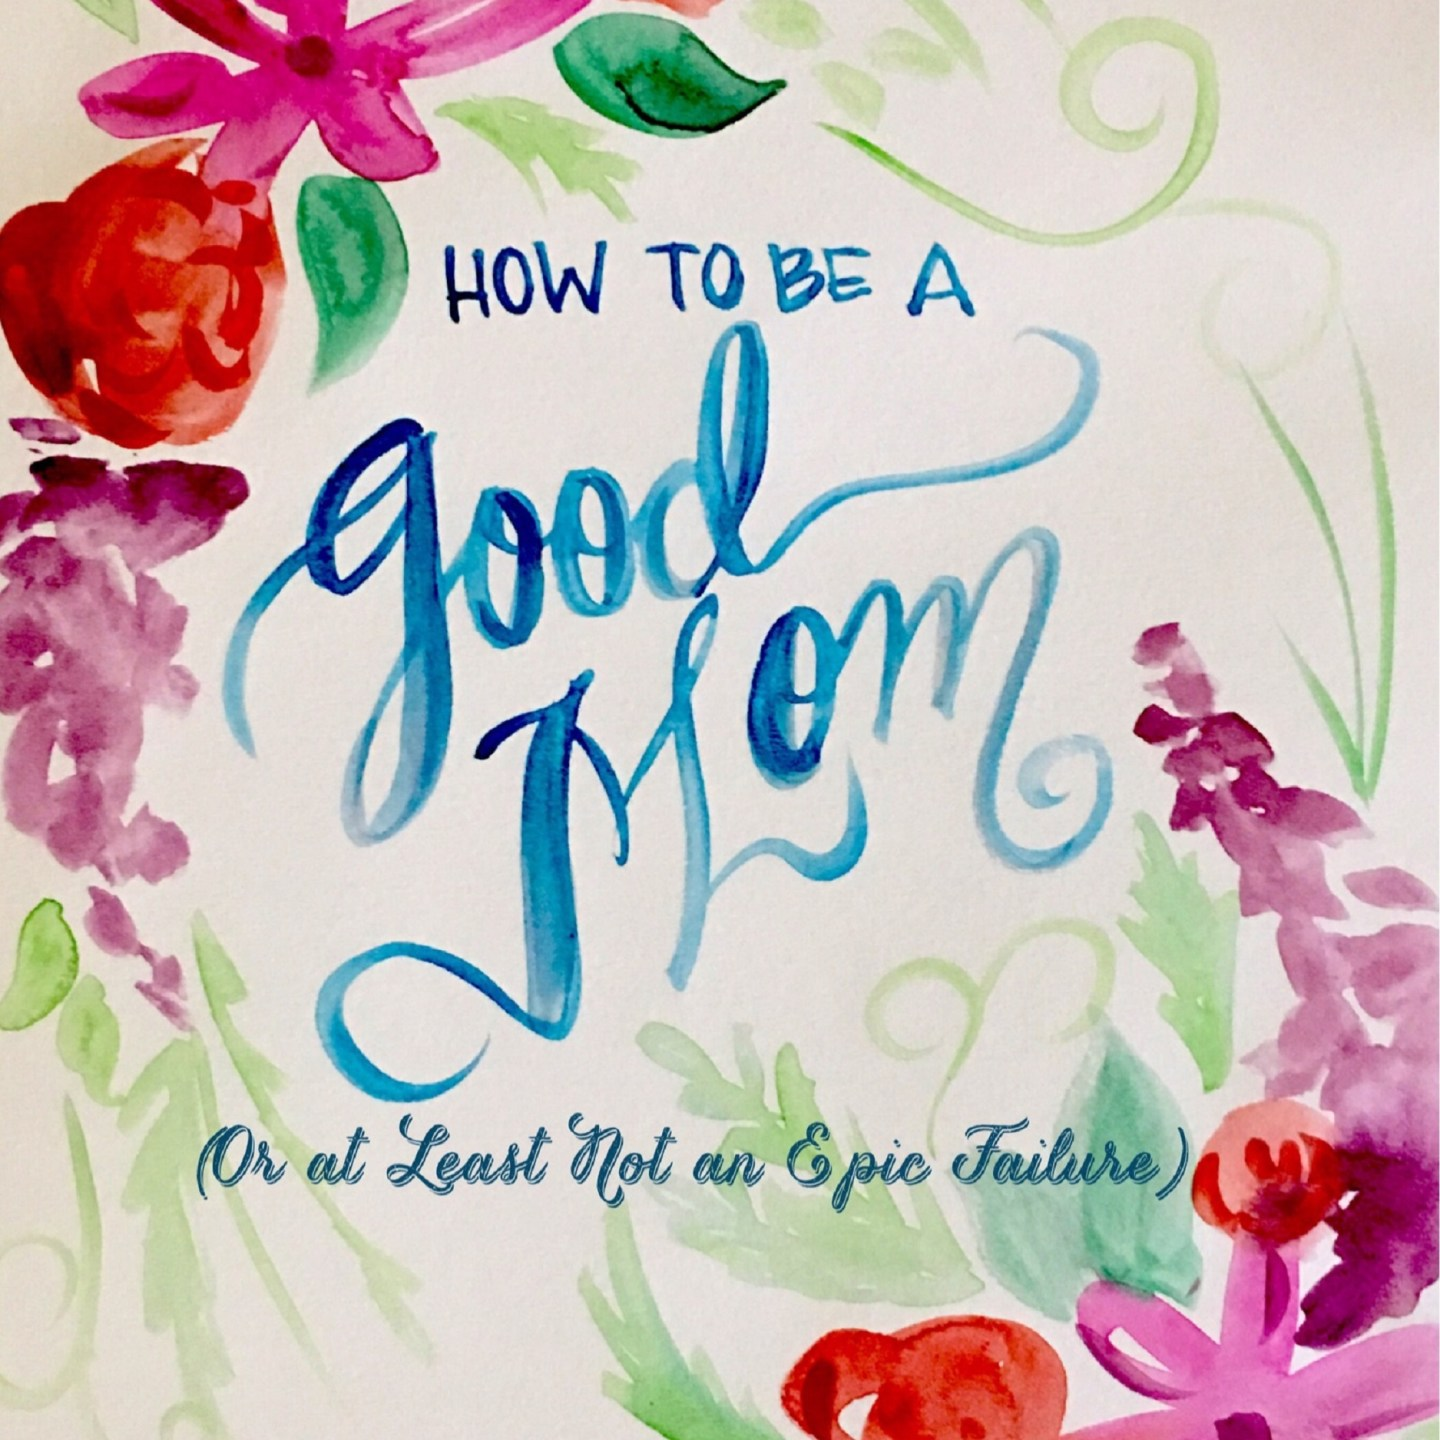 GIVEAWAY TIME! Enter to Win a Free Copy of How to Be a Good Mom